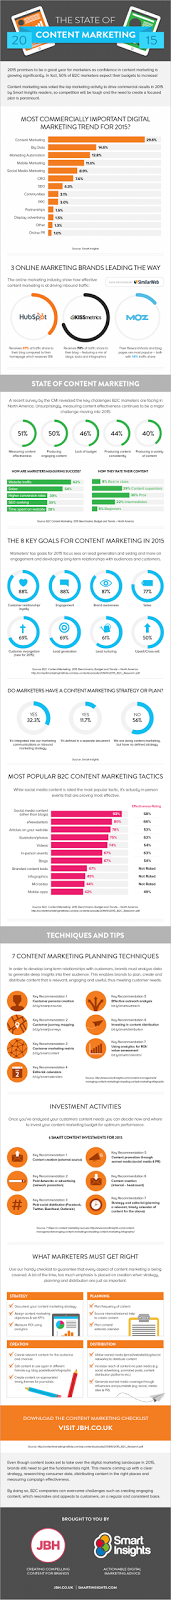 Content Marketing in 2015